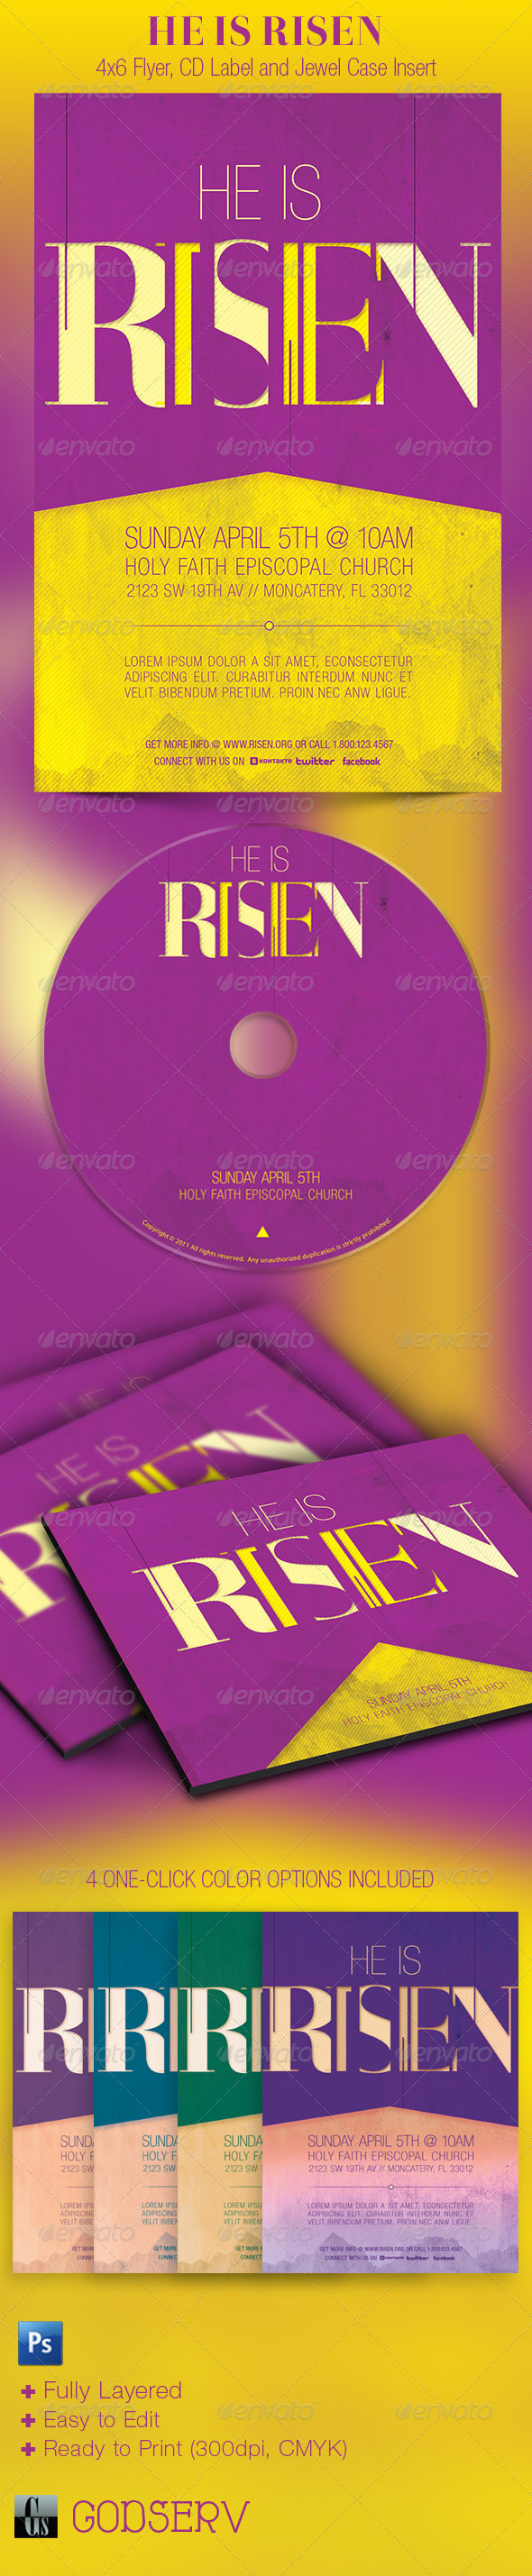 He Is Risen Church Flyer and CD Template - Church Flyers